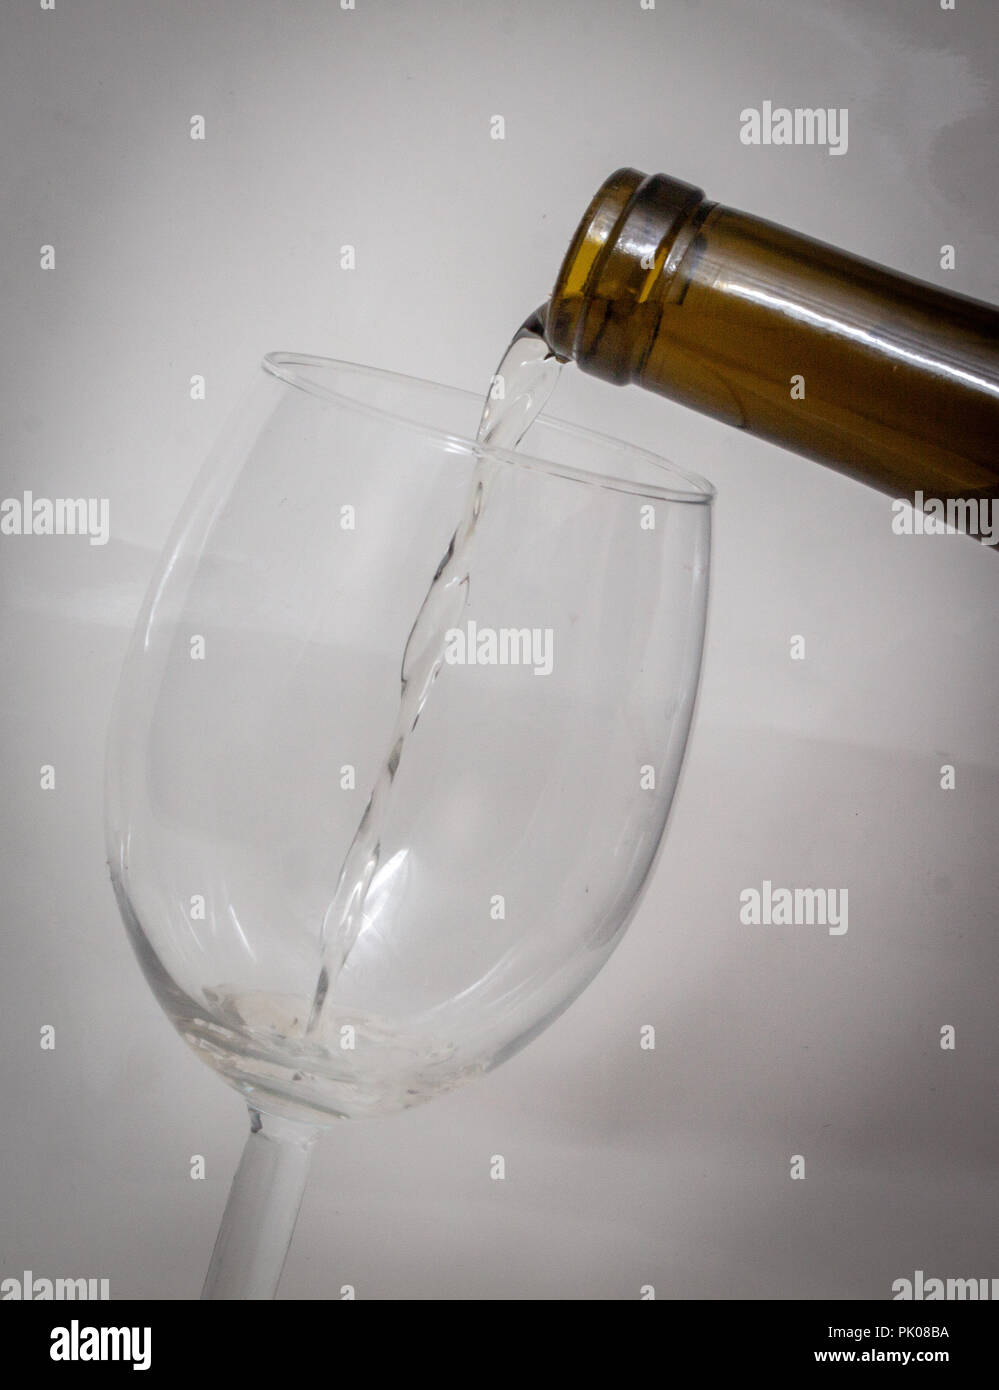 Pouring Water In A Wine Glass Stock Photo 218209470 Alamy